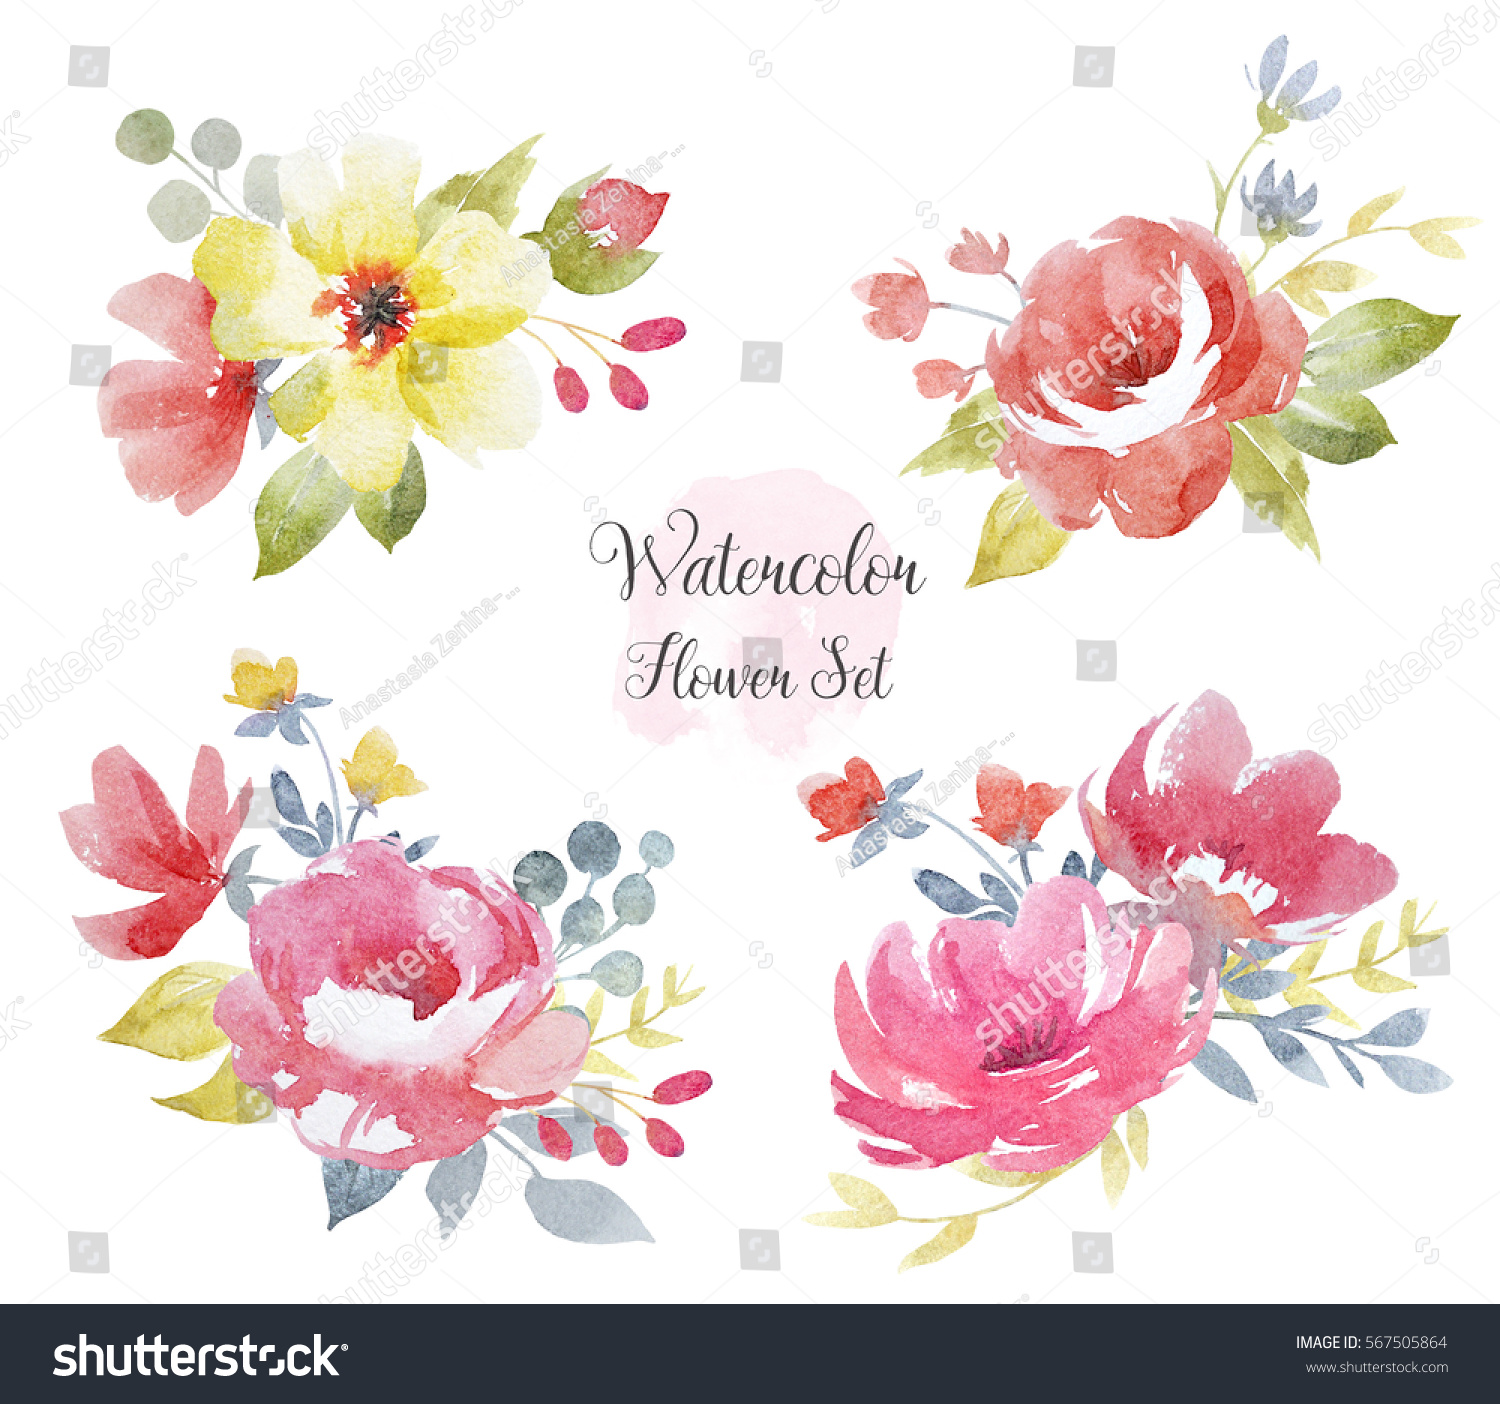 Royalty Free Stock Illustration Of Watercolor Floral Bouquets Set